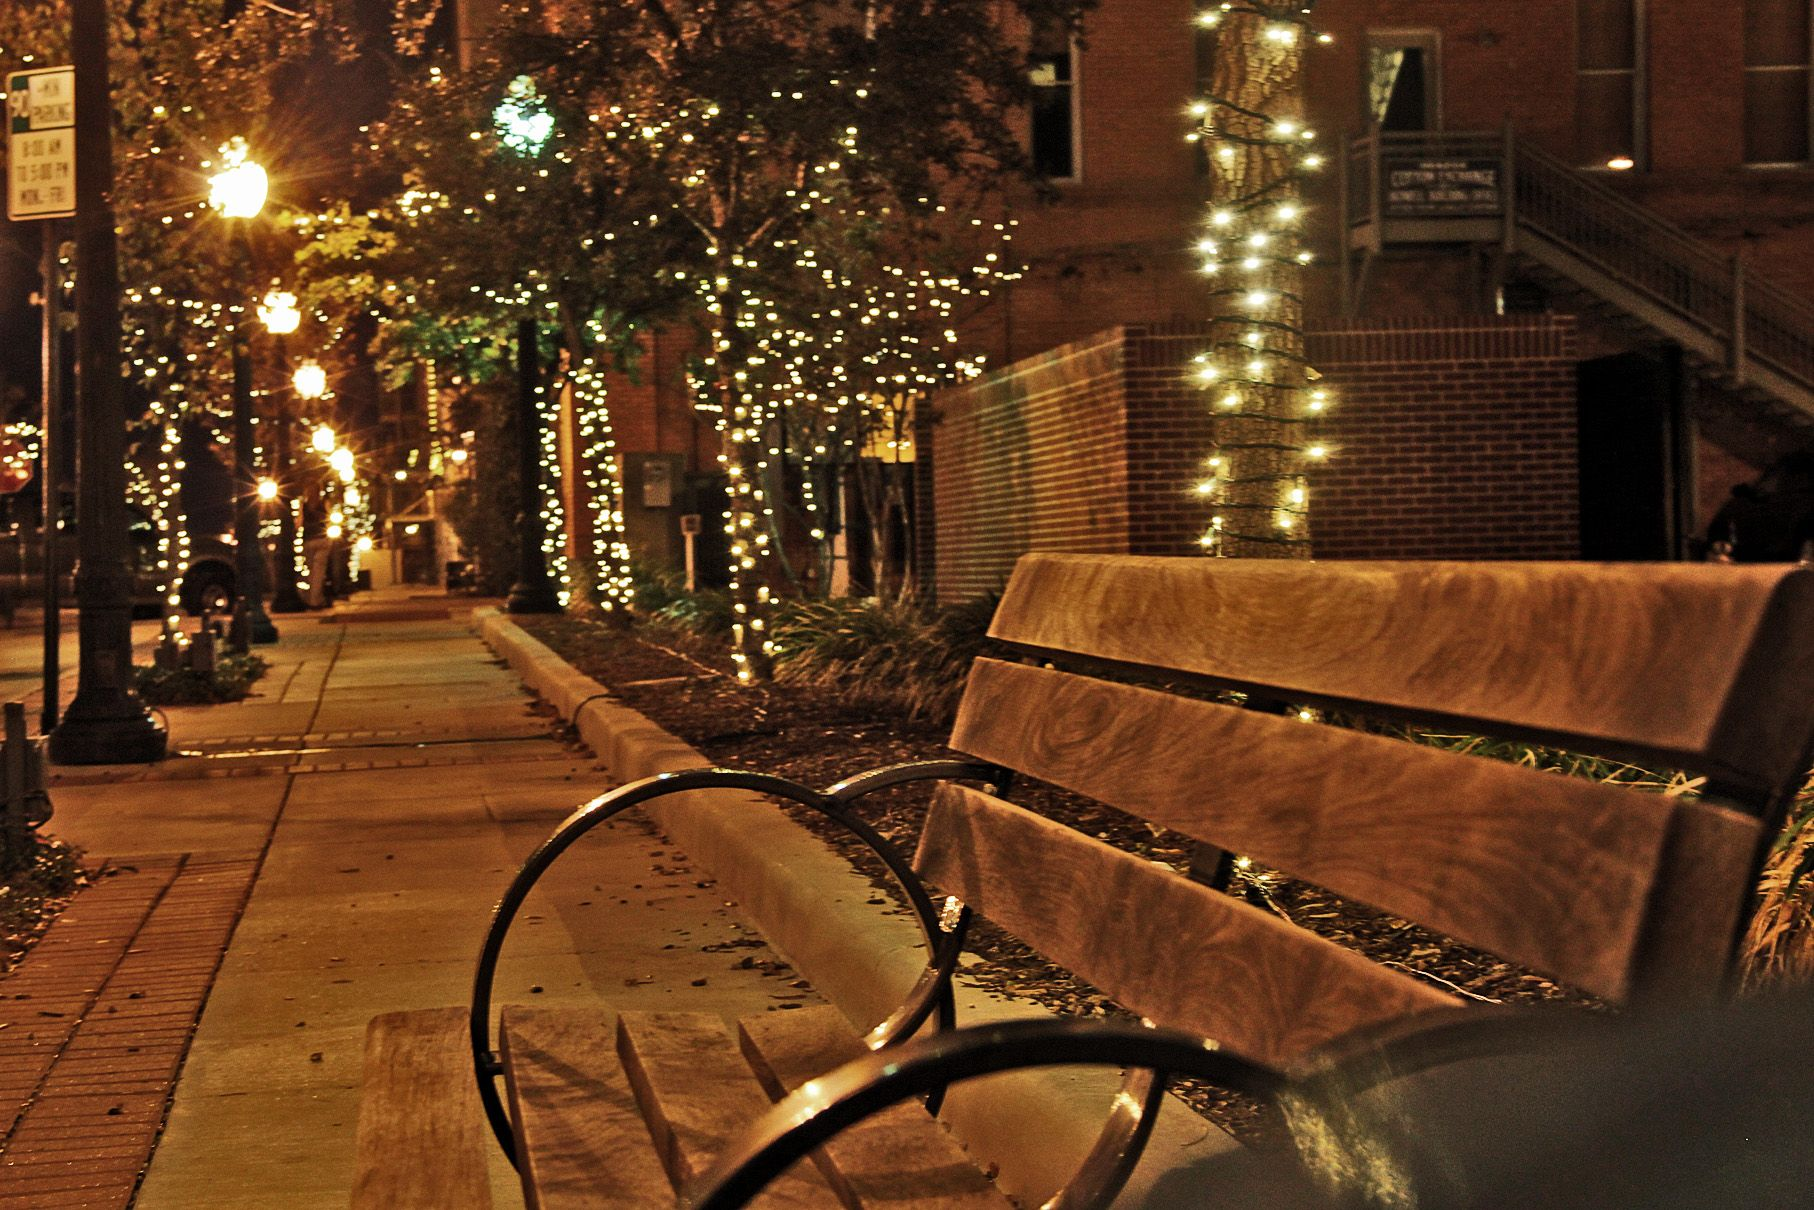 Christmas lights lining the streets in historic downtown